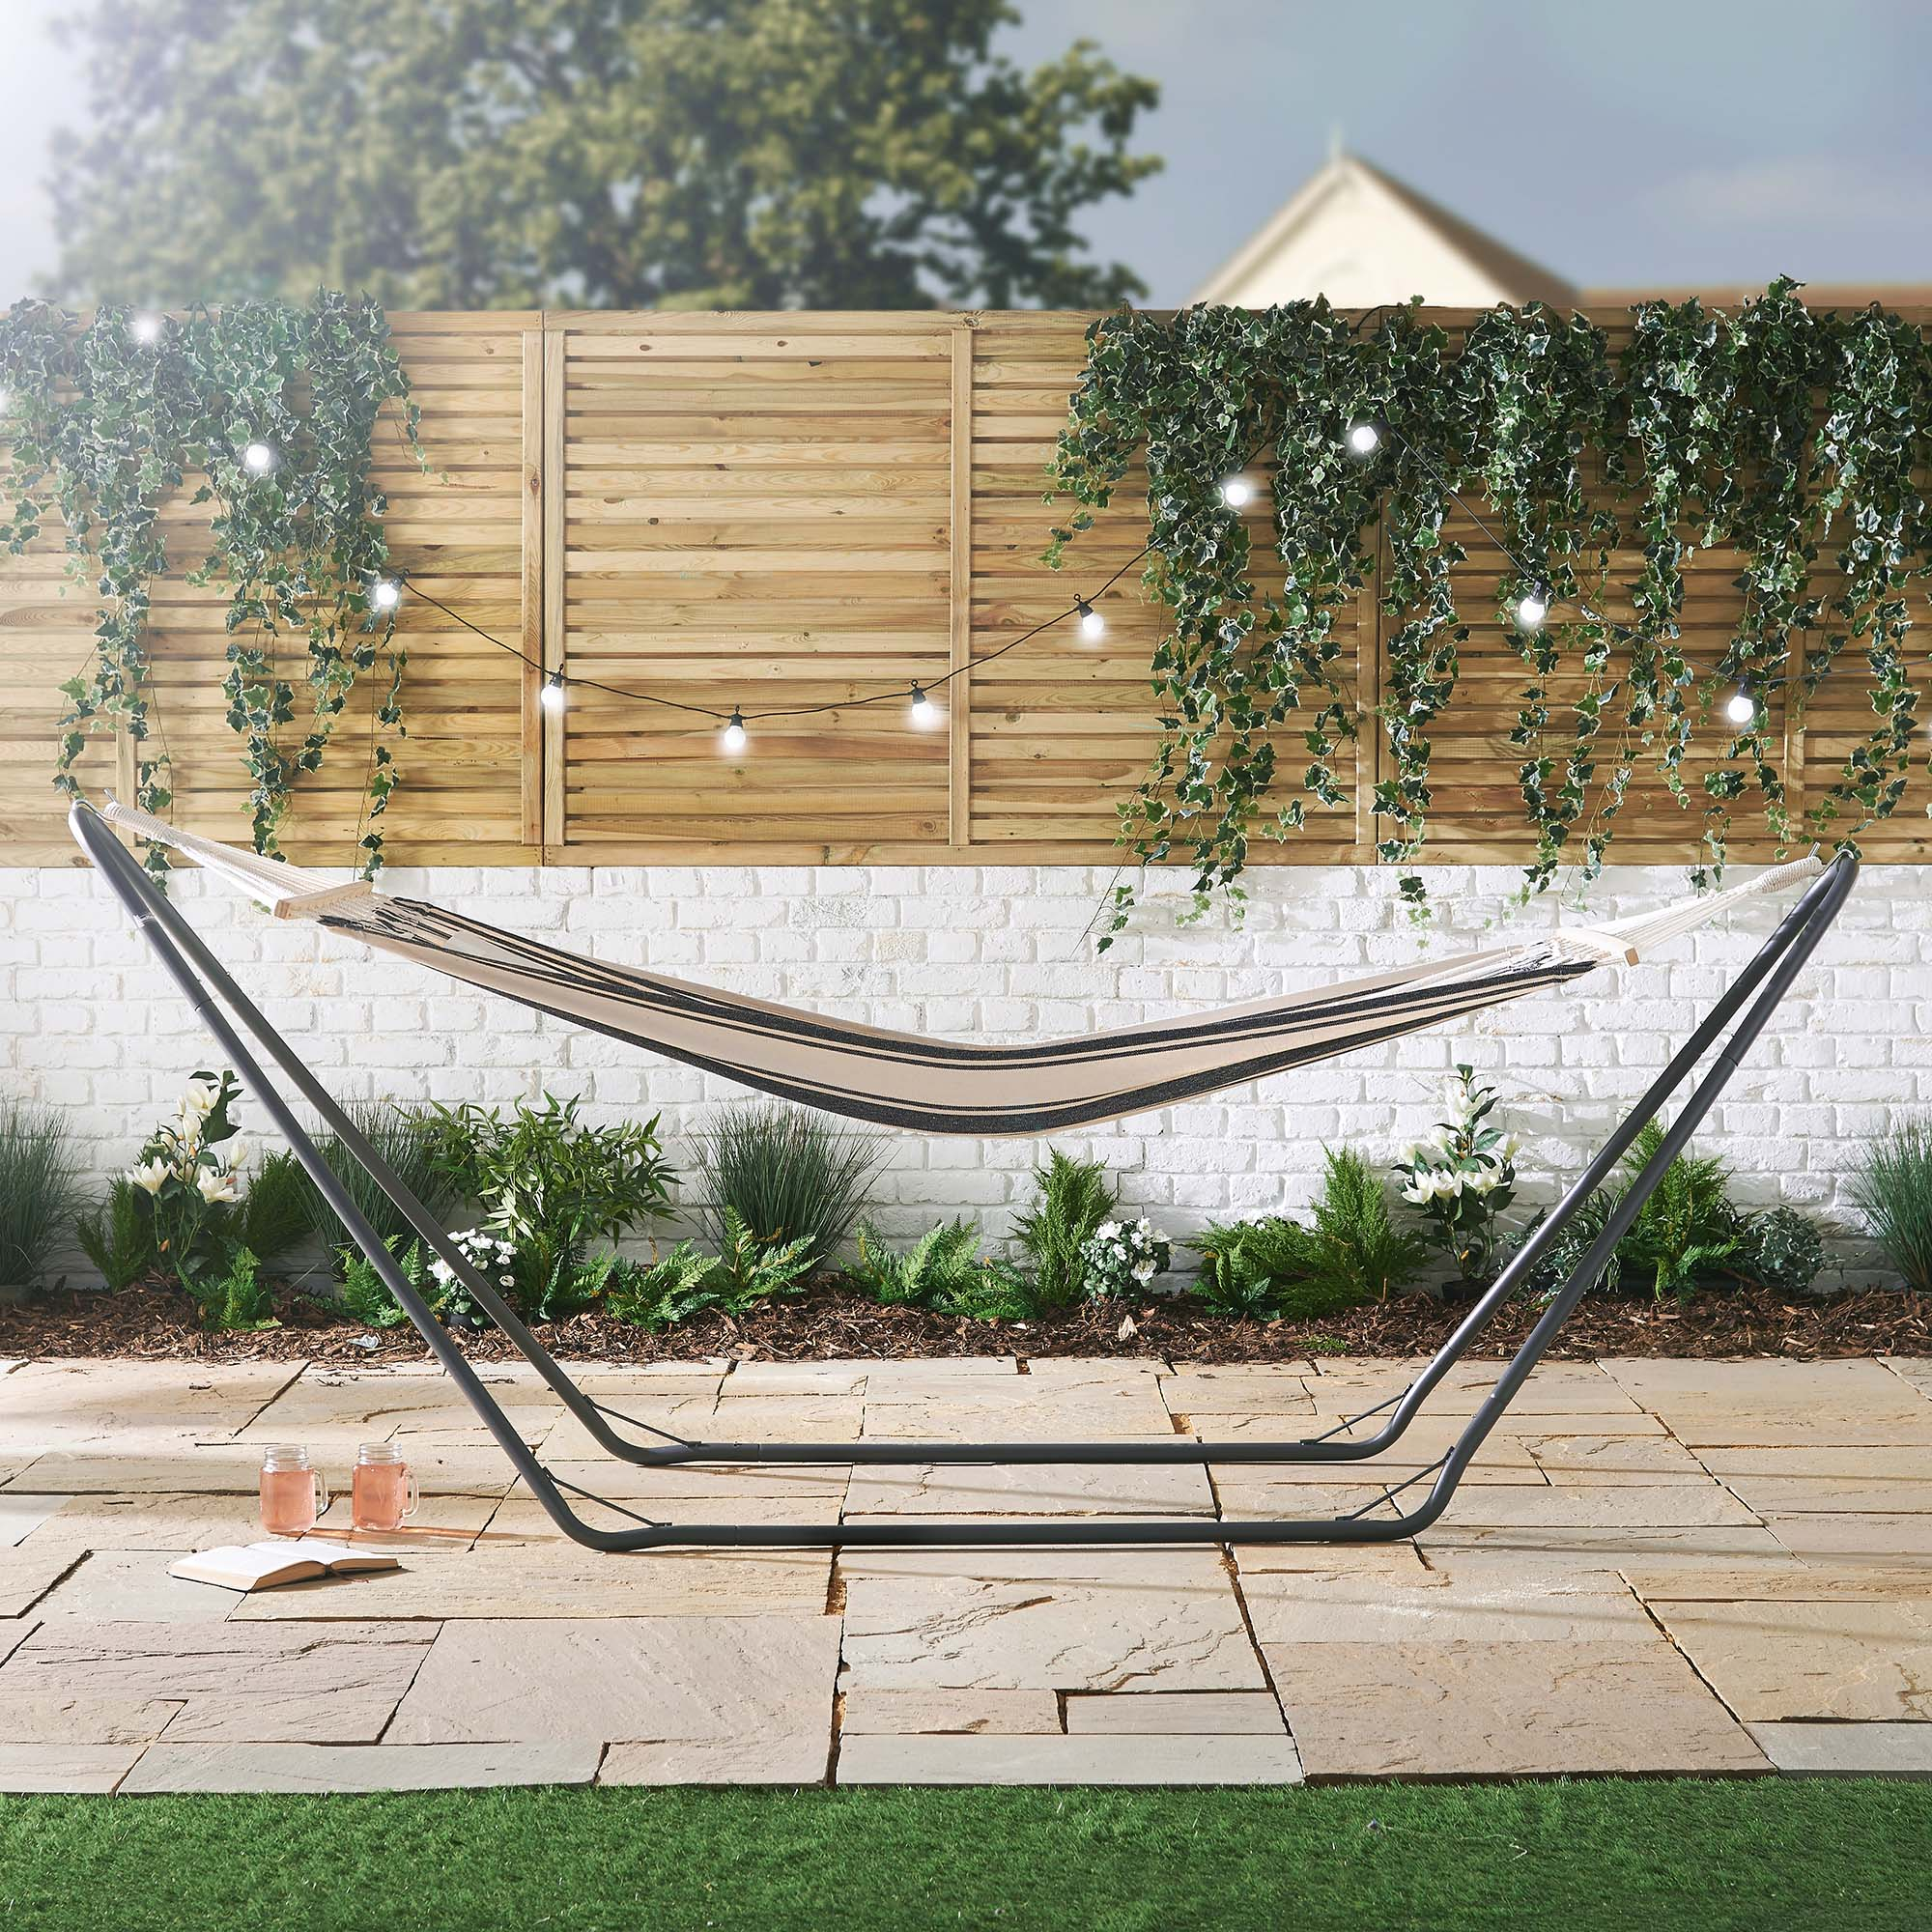 for free frame sentinel and luxury patio itm standing garden or with swing seat metal outdoor vonhaus swinging hammock